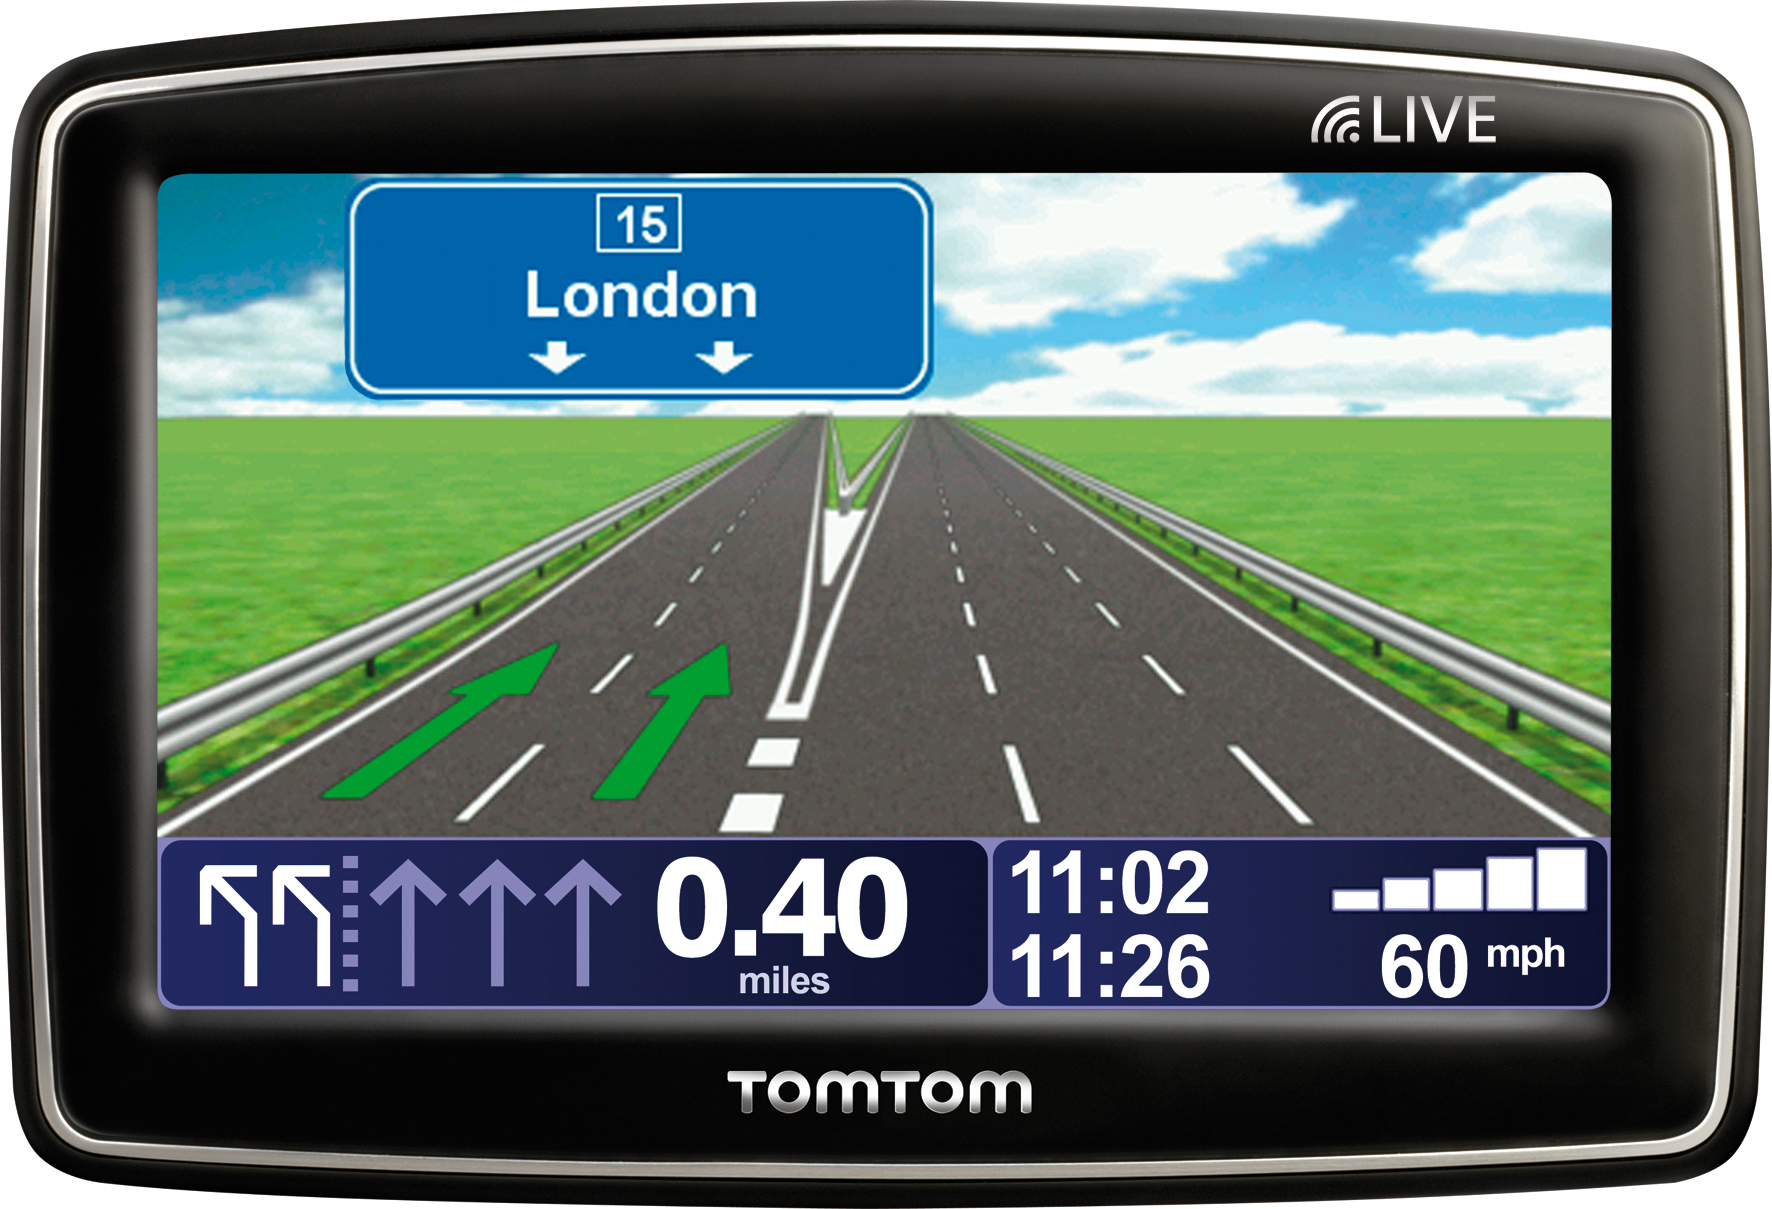 TomTom brings LIVE Services to mid-range satellite